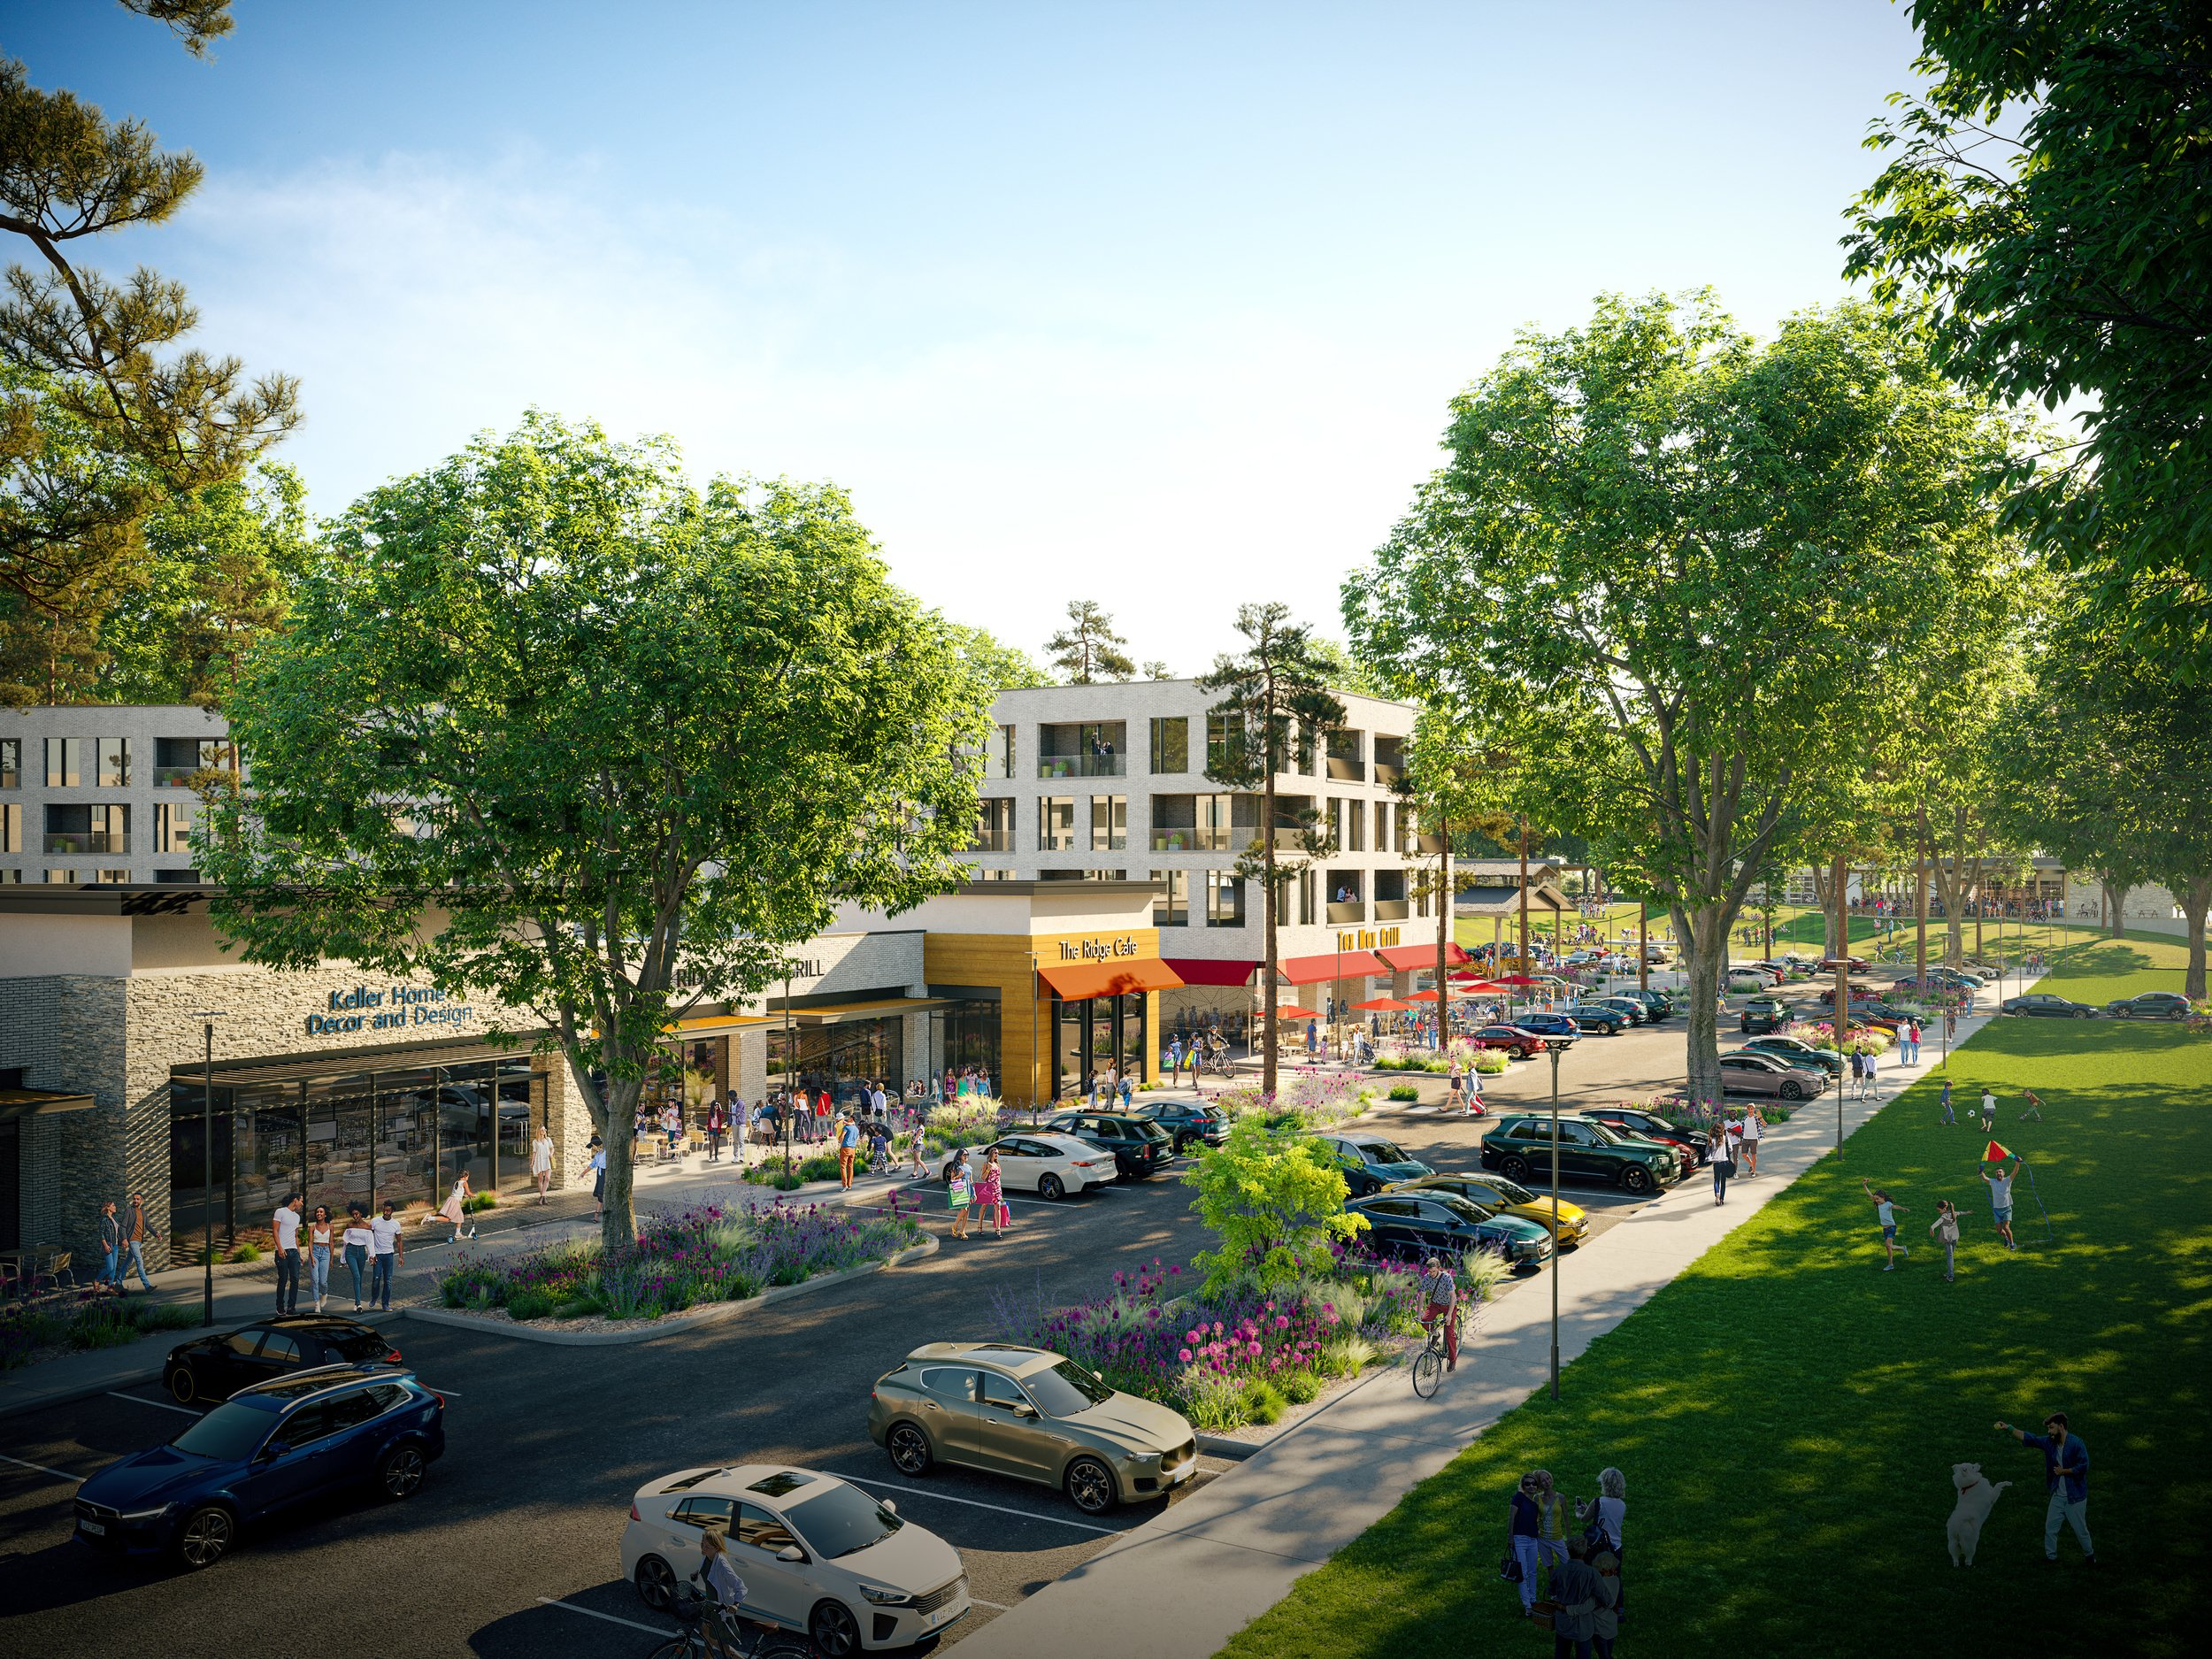 Keller property sells for new mixed-use project thumbnail